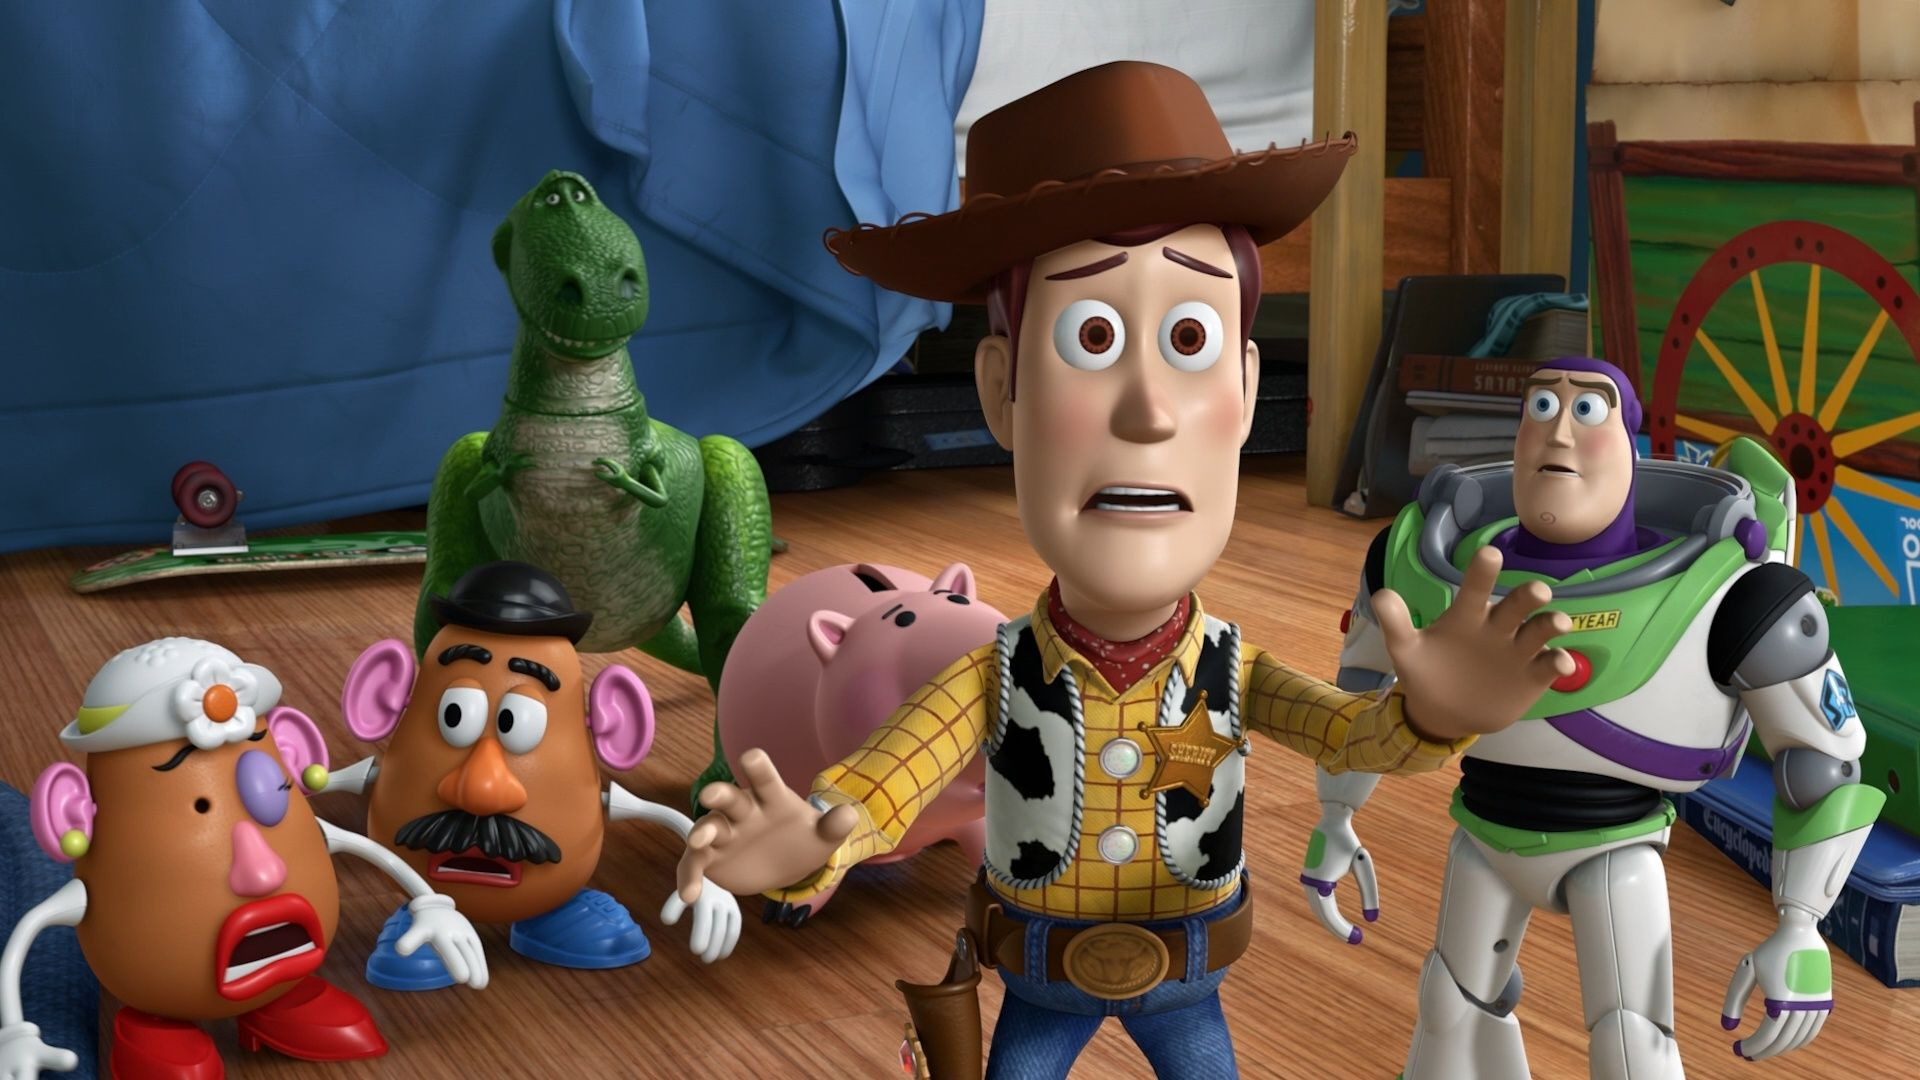 toy story wallpapers group with items | hd wallpapers | pinterest